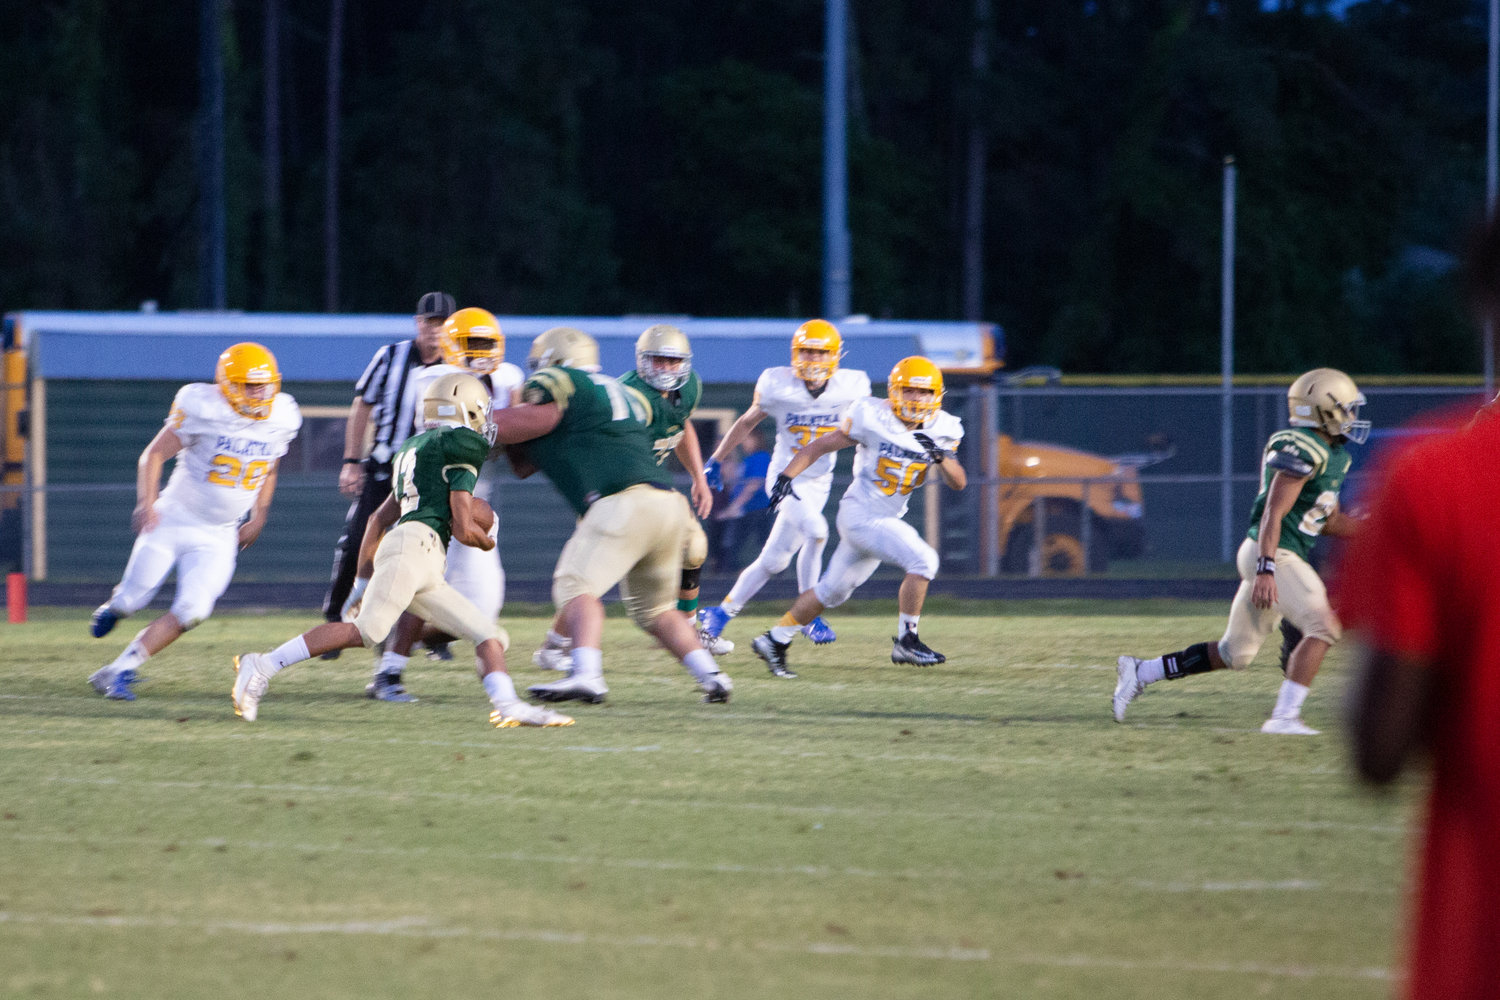 A Nease runner finds a hole against Palatka.